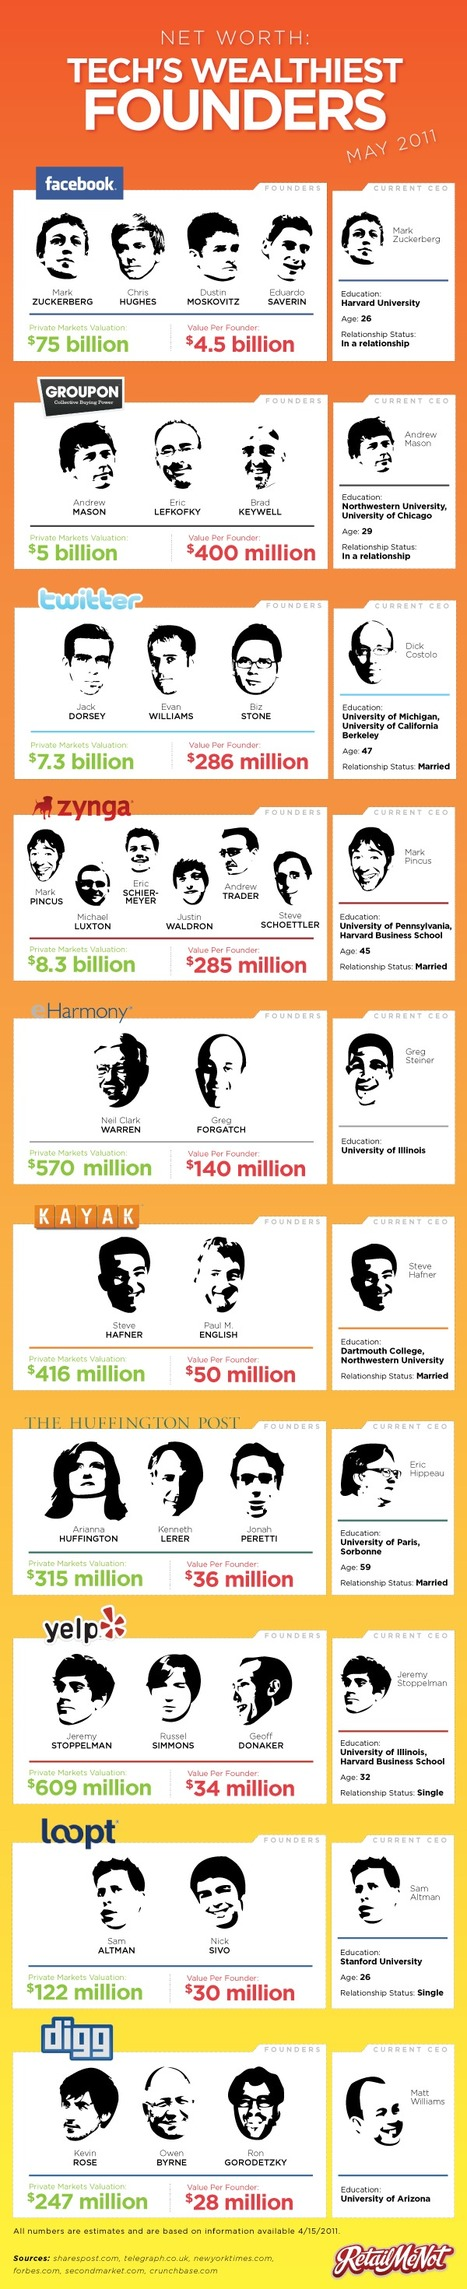 31 Tech Company Founders and Their Millions | Infographics | Scoop.it